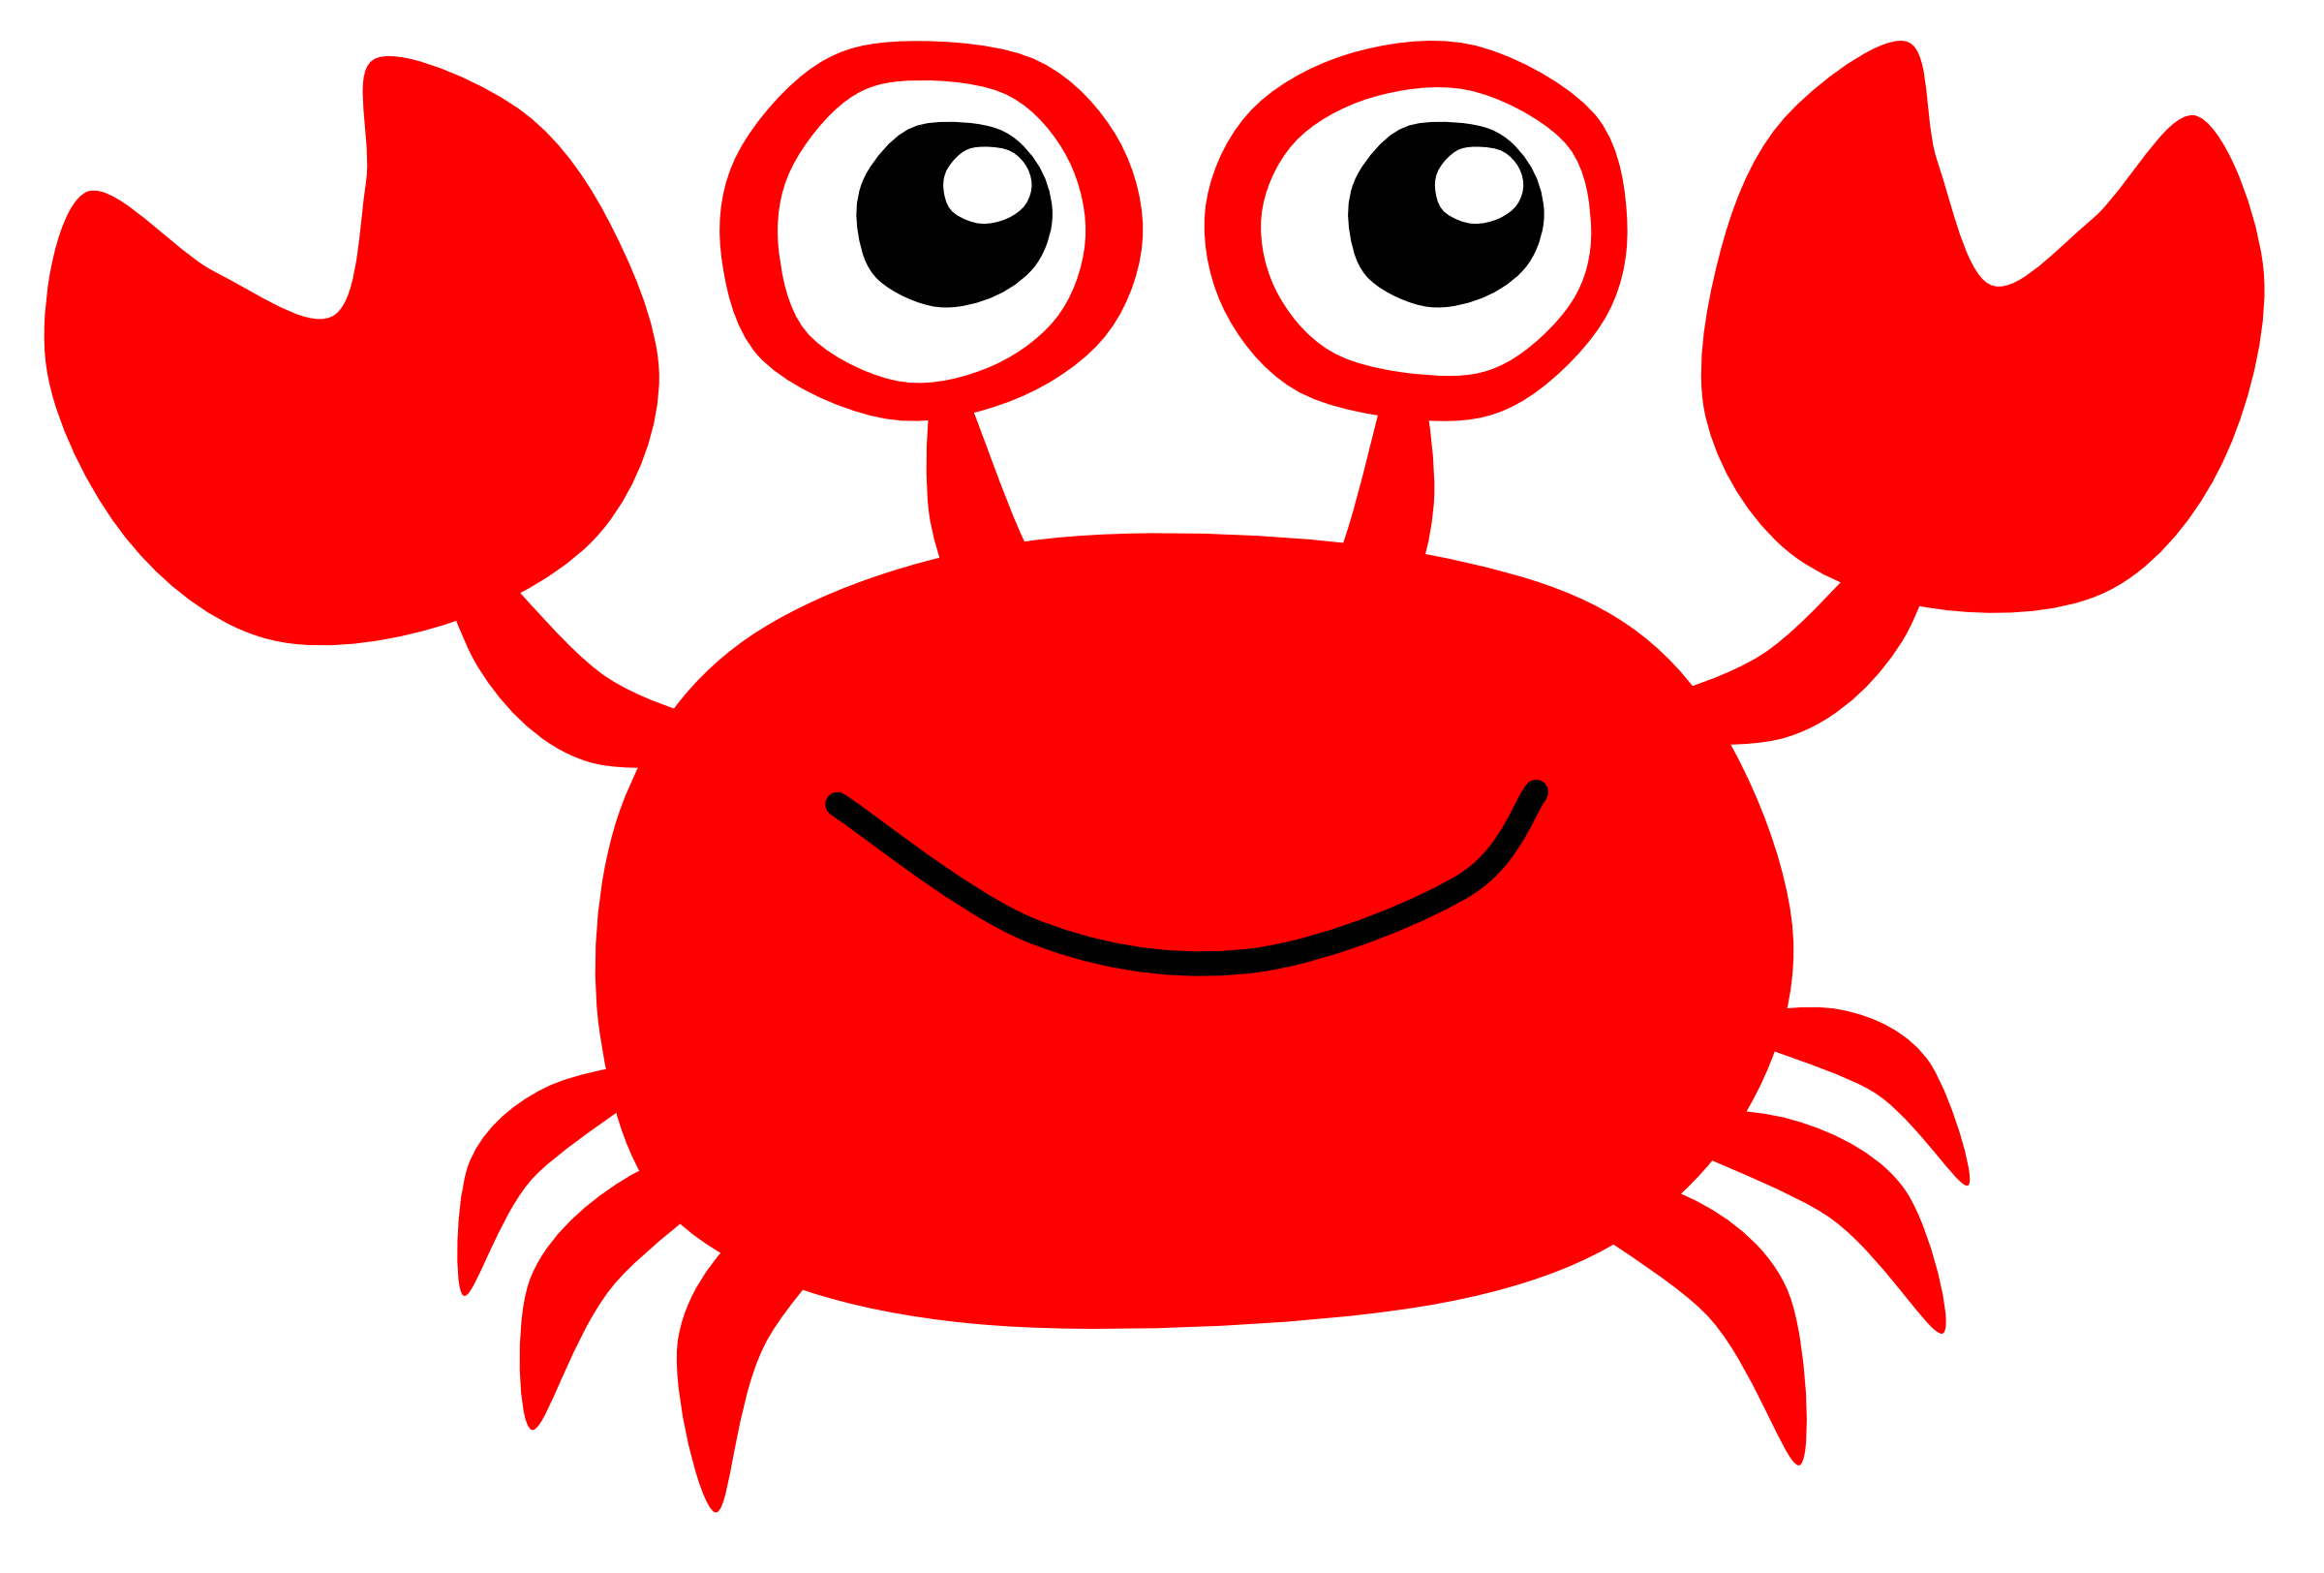 Apple crab clipart black and white graphic black and white library Crab Silhouette Clip Art at GetDrawings.com | Free for personal use ... graphic black and white library